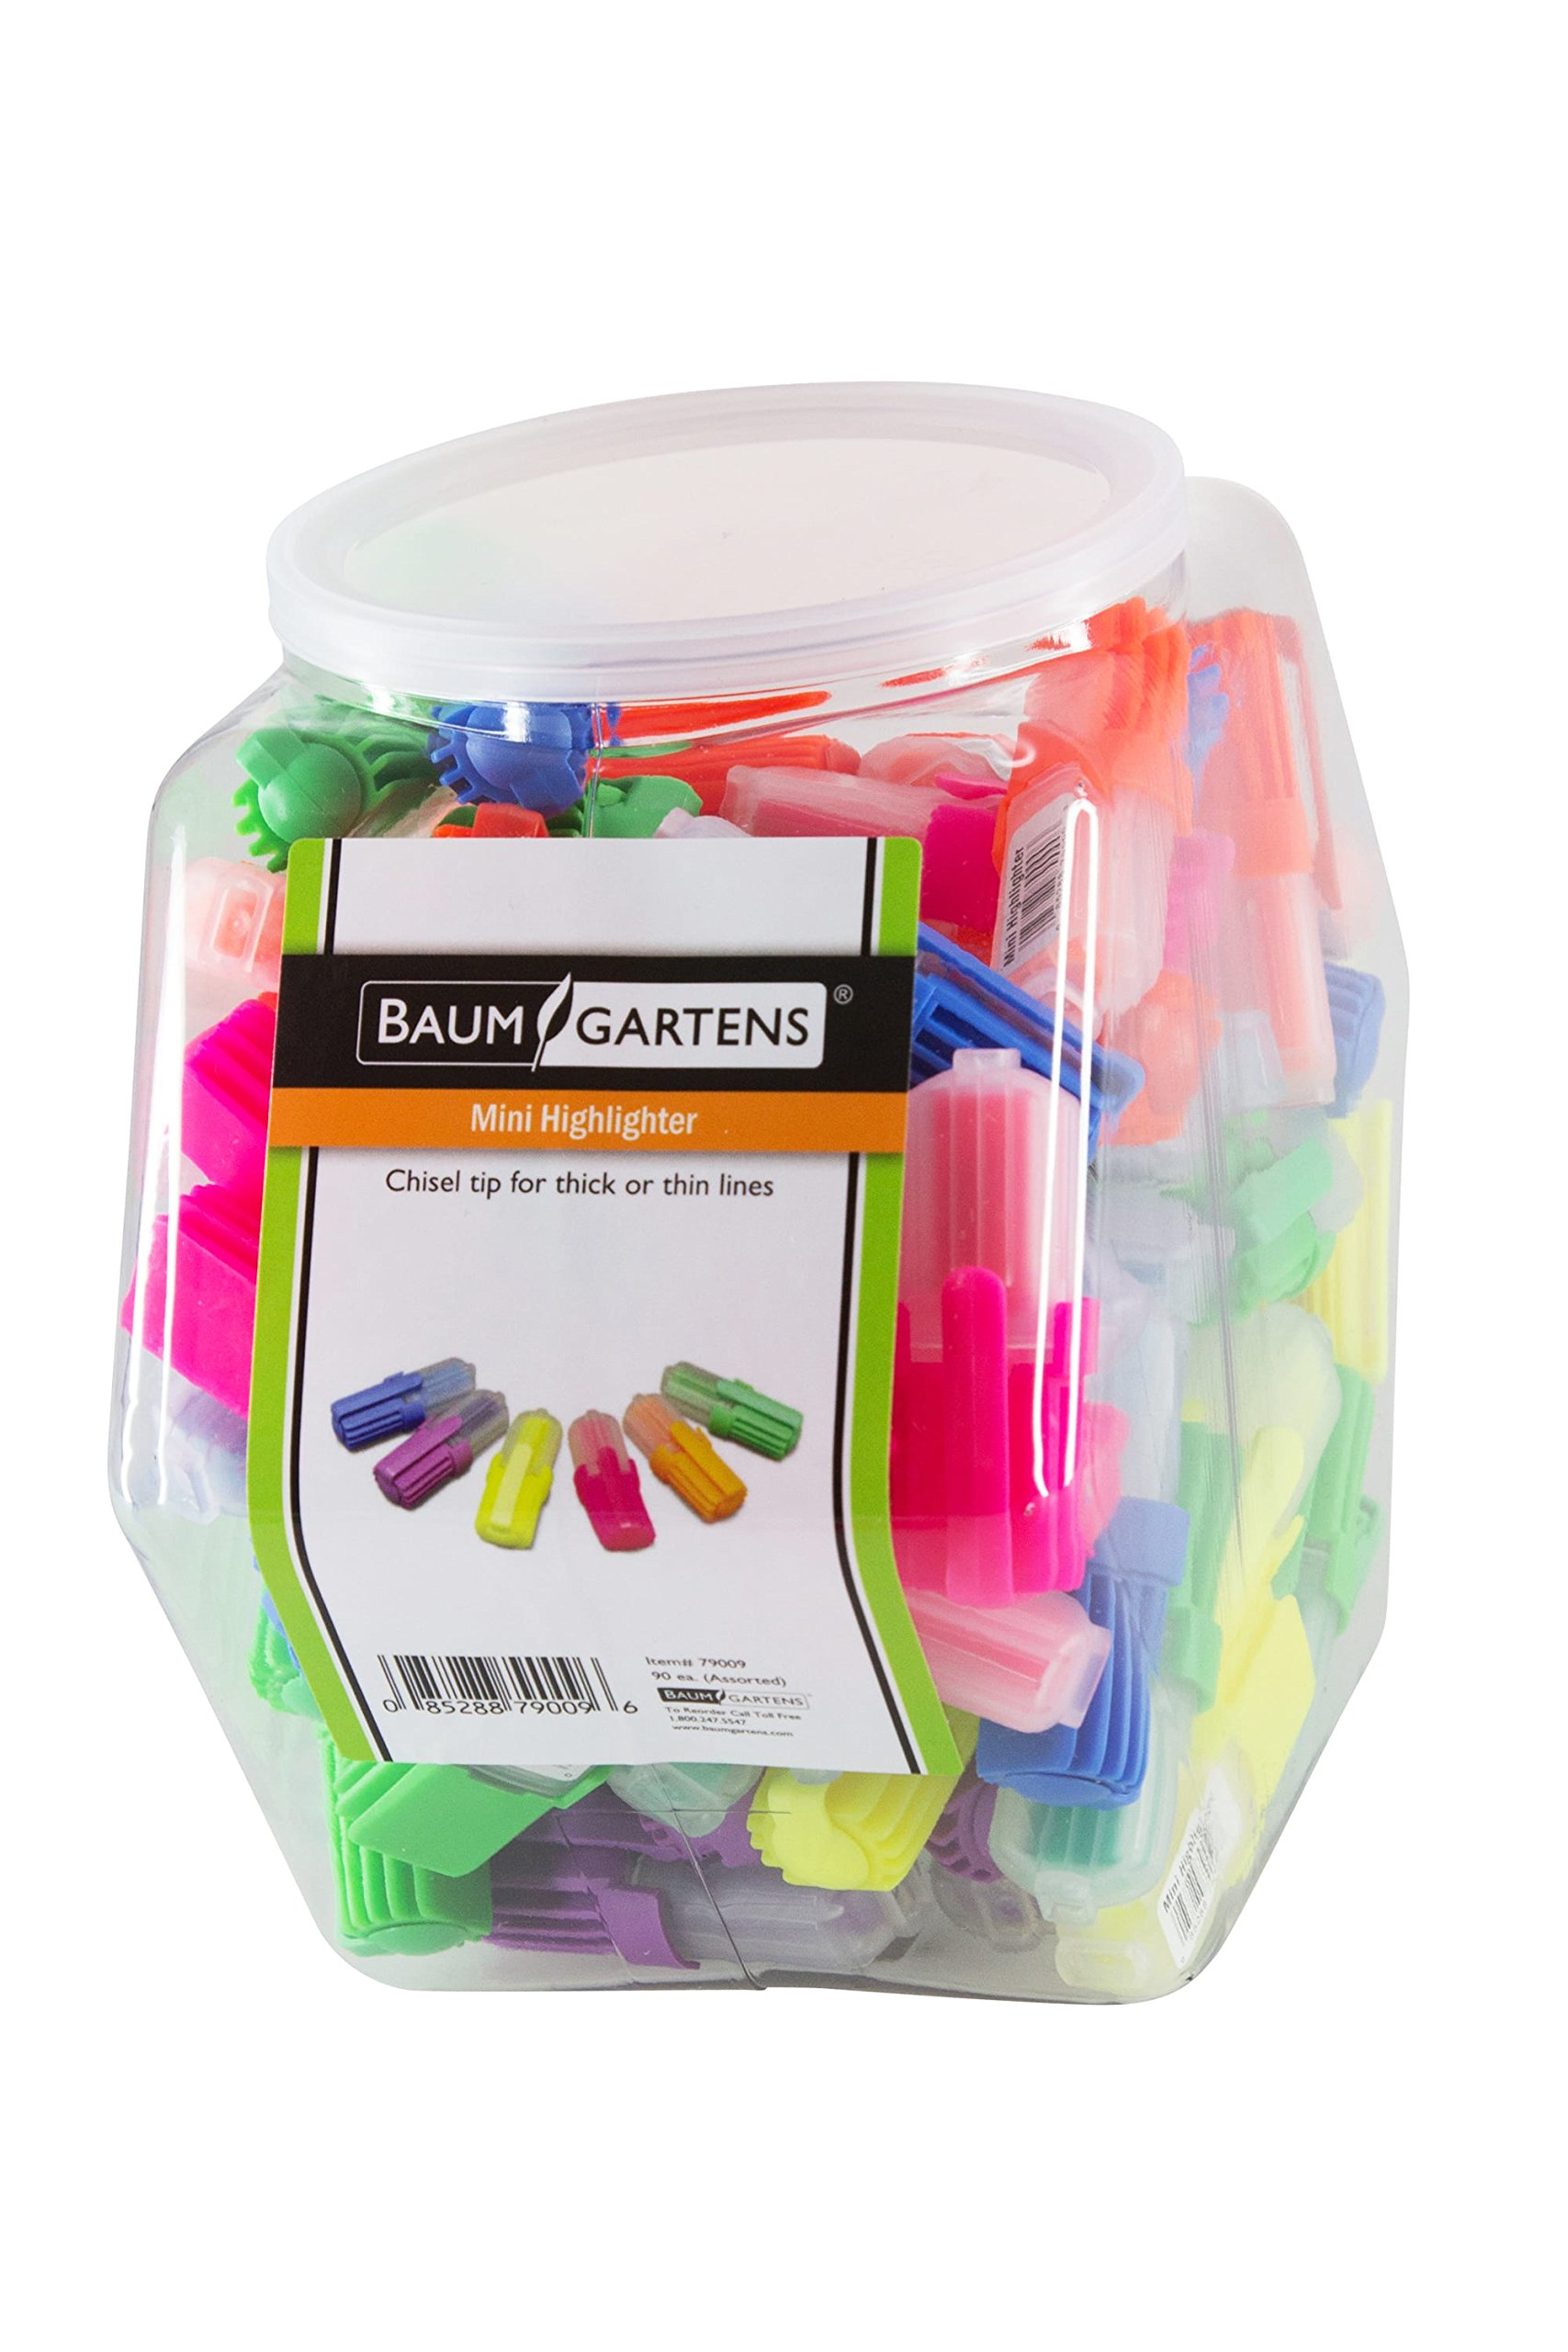 Baumgartens Mini Highlighters Hexagonal Tub Display of 90 Assorted Colors (79009) by Baumgartens (Image #1)